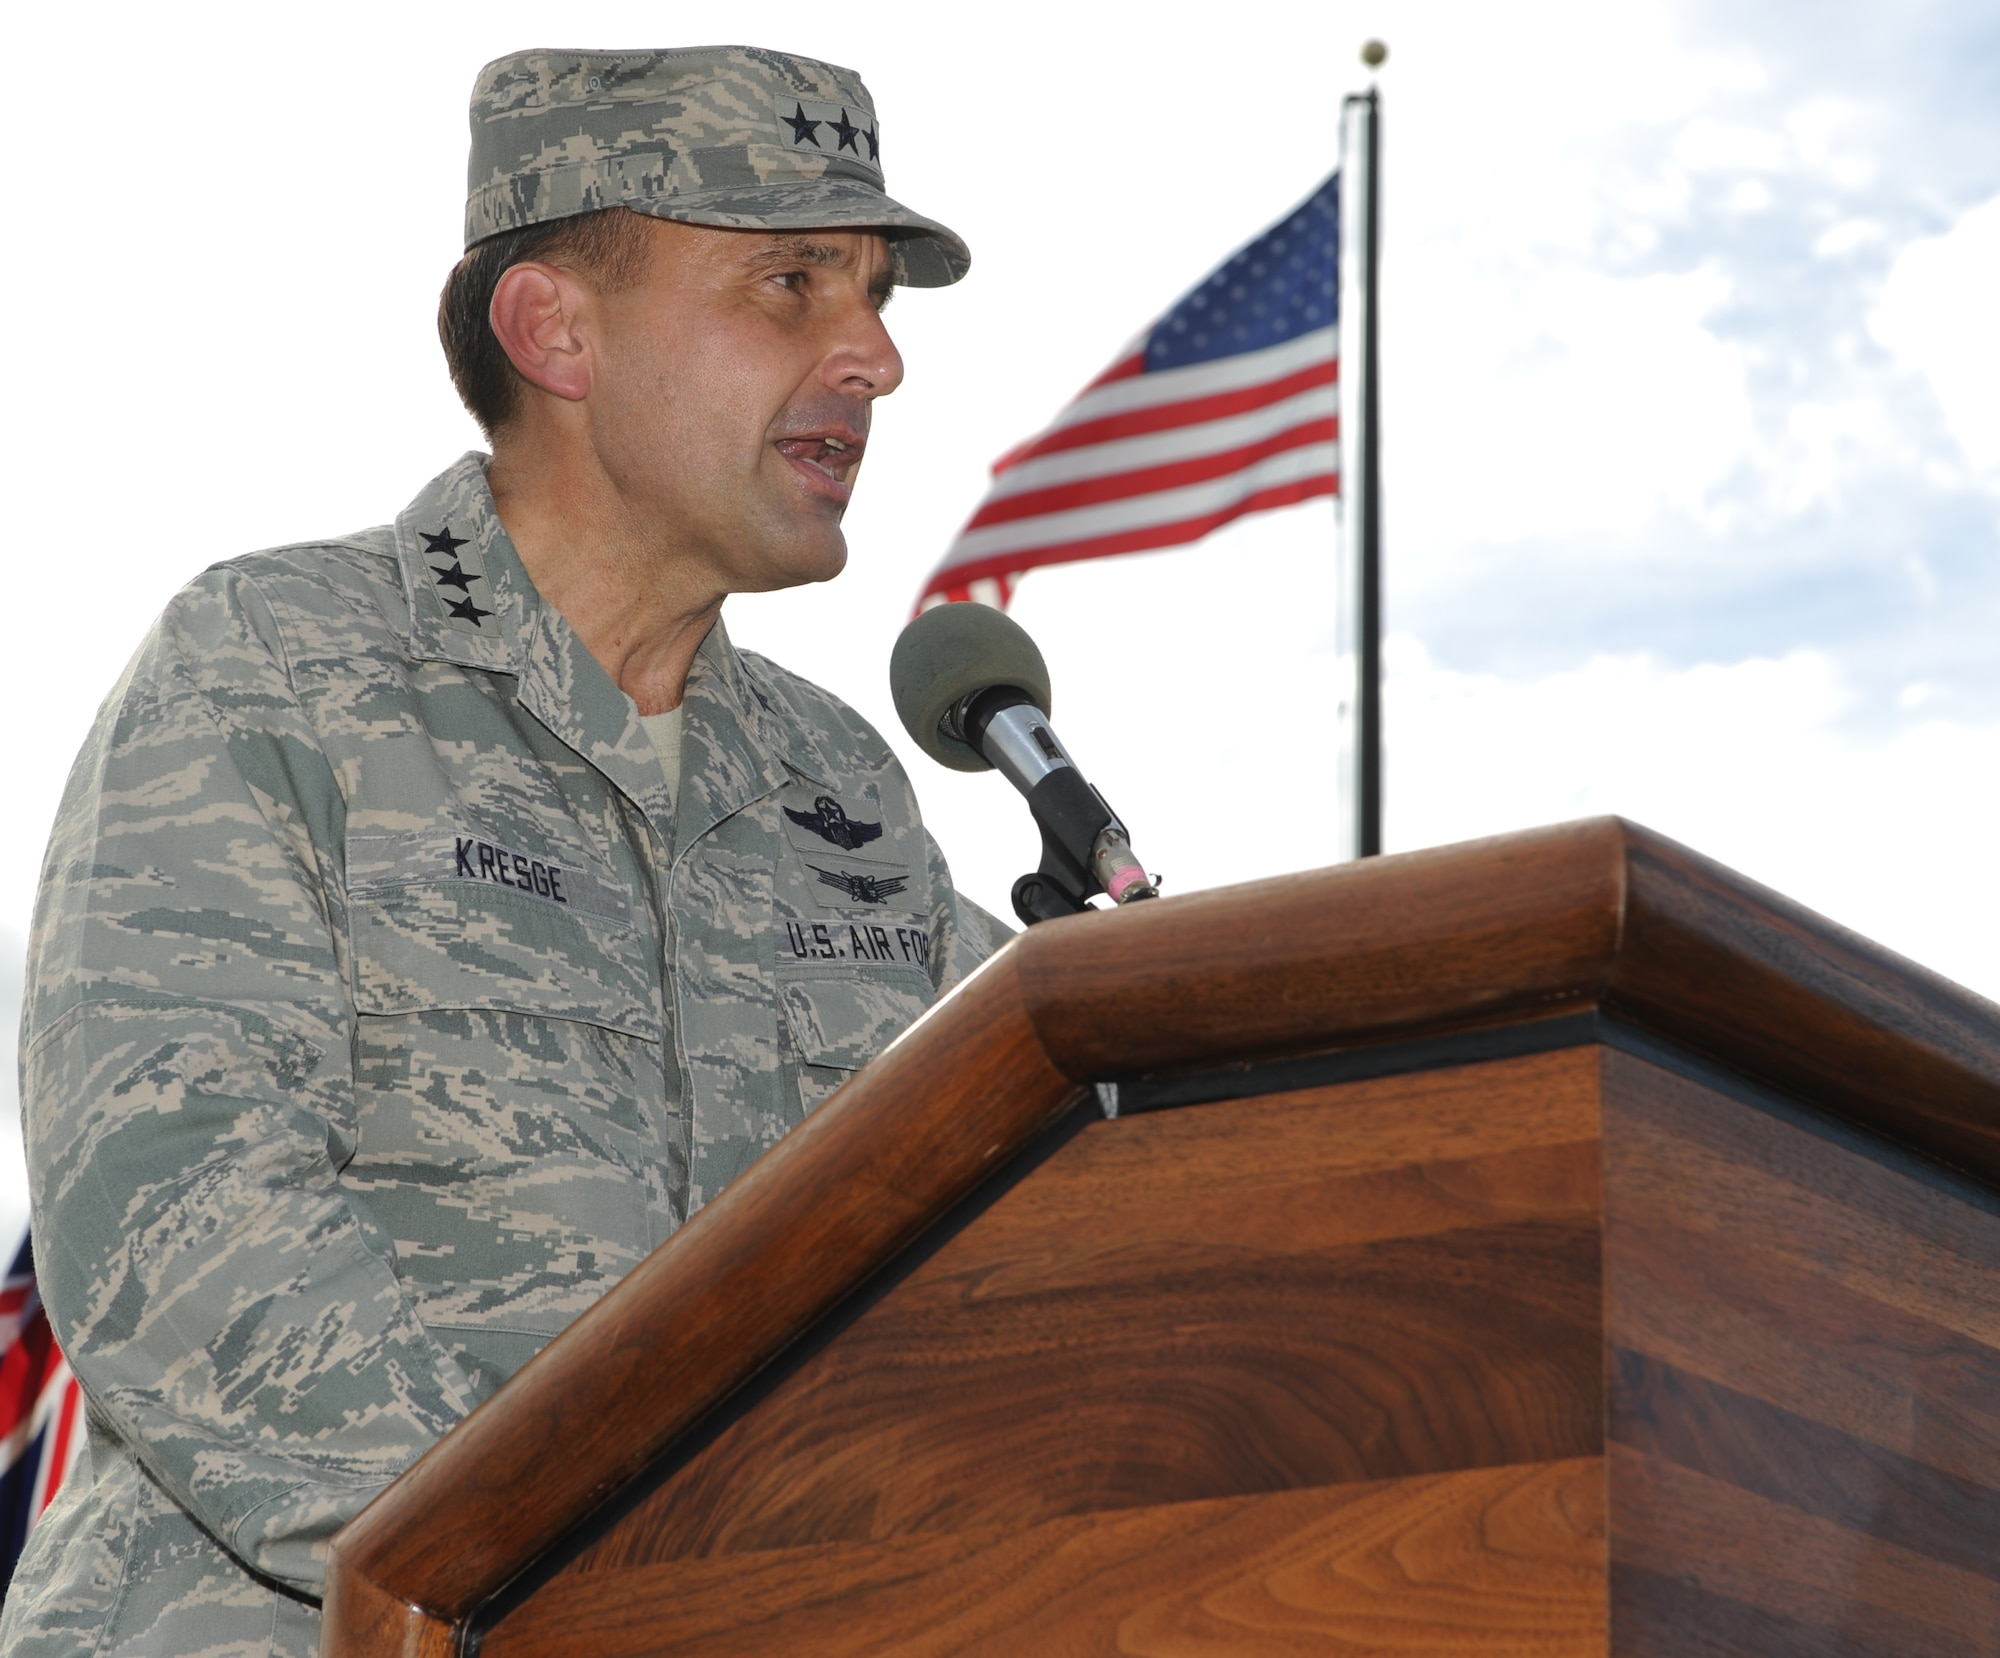 Lt. Gen. Stanley T. Kresge, former 13th Air Force commander, delivers a speech during the 13th Air Force inactivation ceremony Sept. 28, 2012, at Joint Base Pearl Harbor-Hickam, Hawaii. (U.S. Air Force photo/Staff Sgt. Nathan Allen)